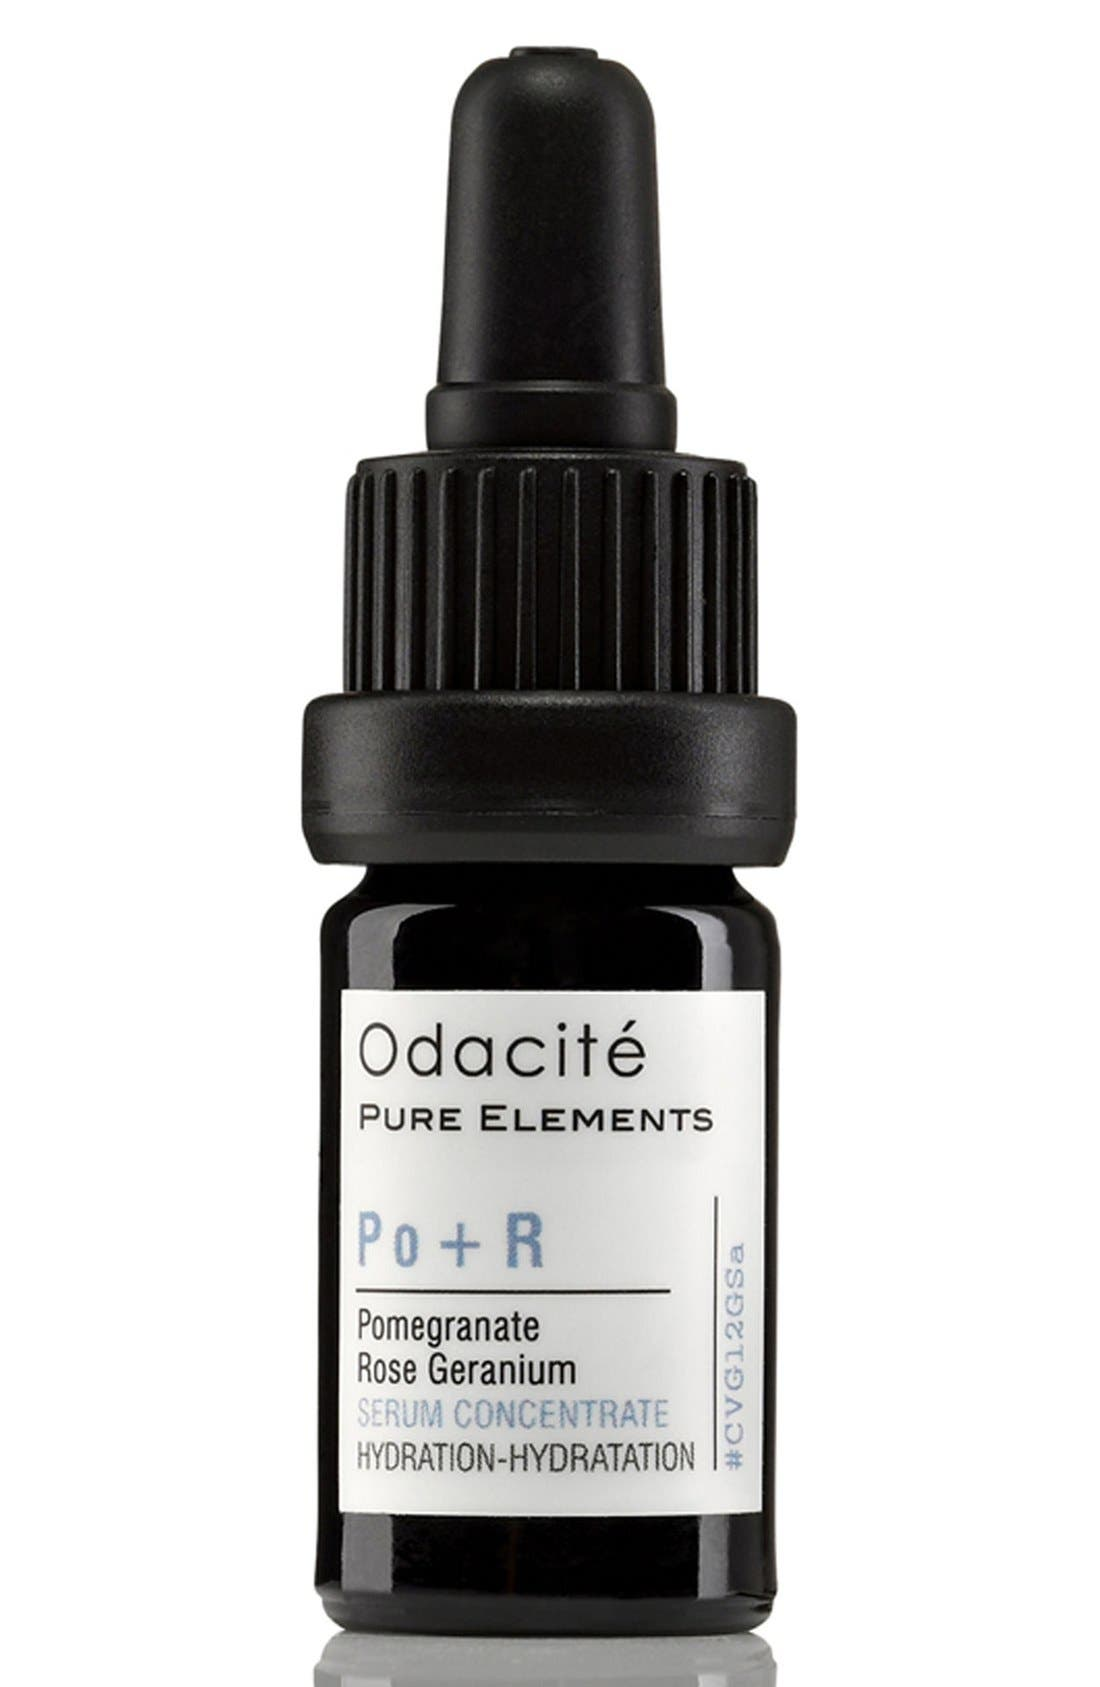 Odacité Po + R Pomegranate-Rose Geranium Hydration Serum Concentrate